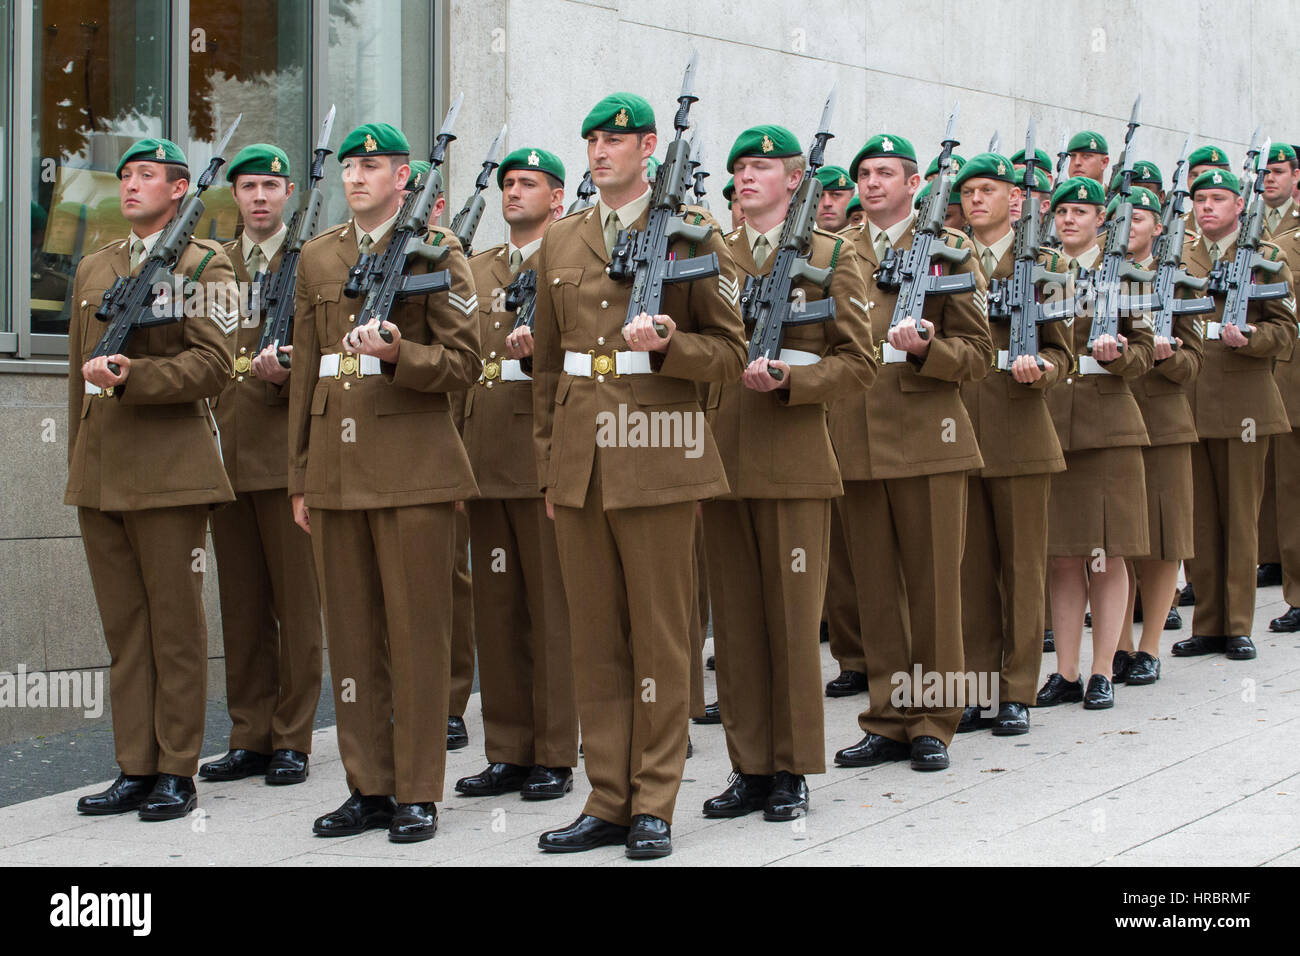 British soldiers prepare to march through Mönchengladbach, Germany on Friday, 12th July 2013 as they prepare - Stock Image